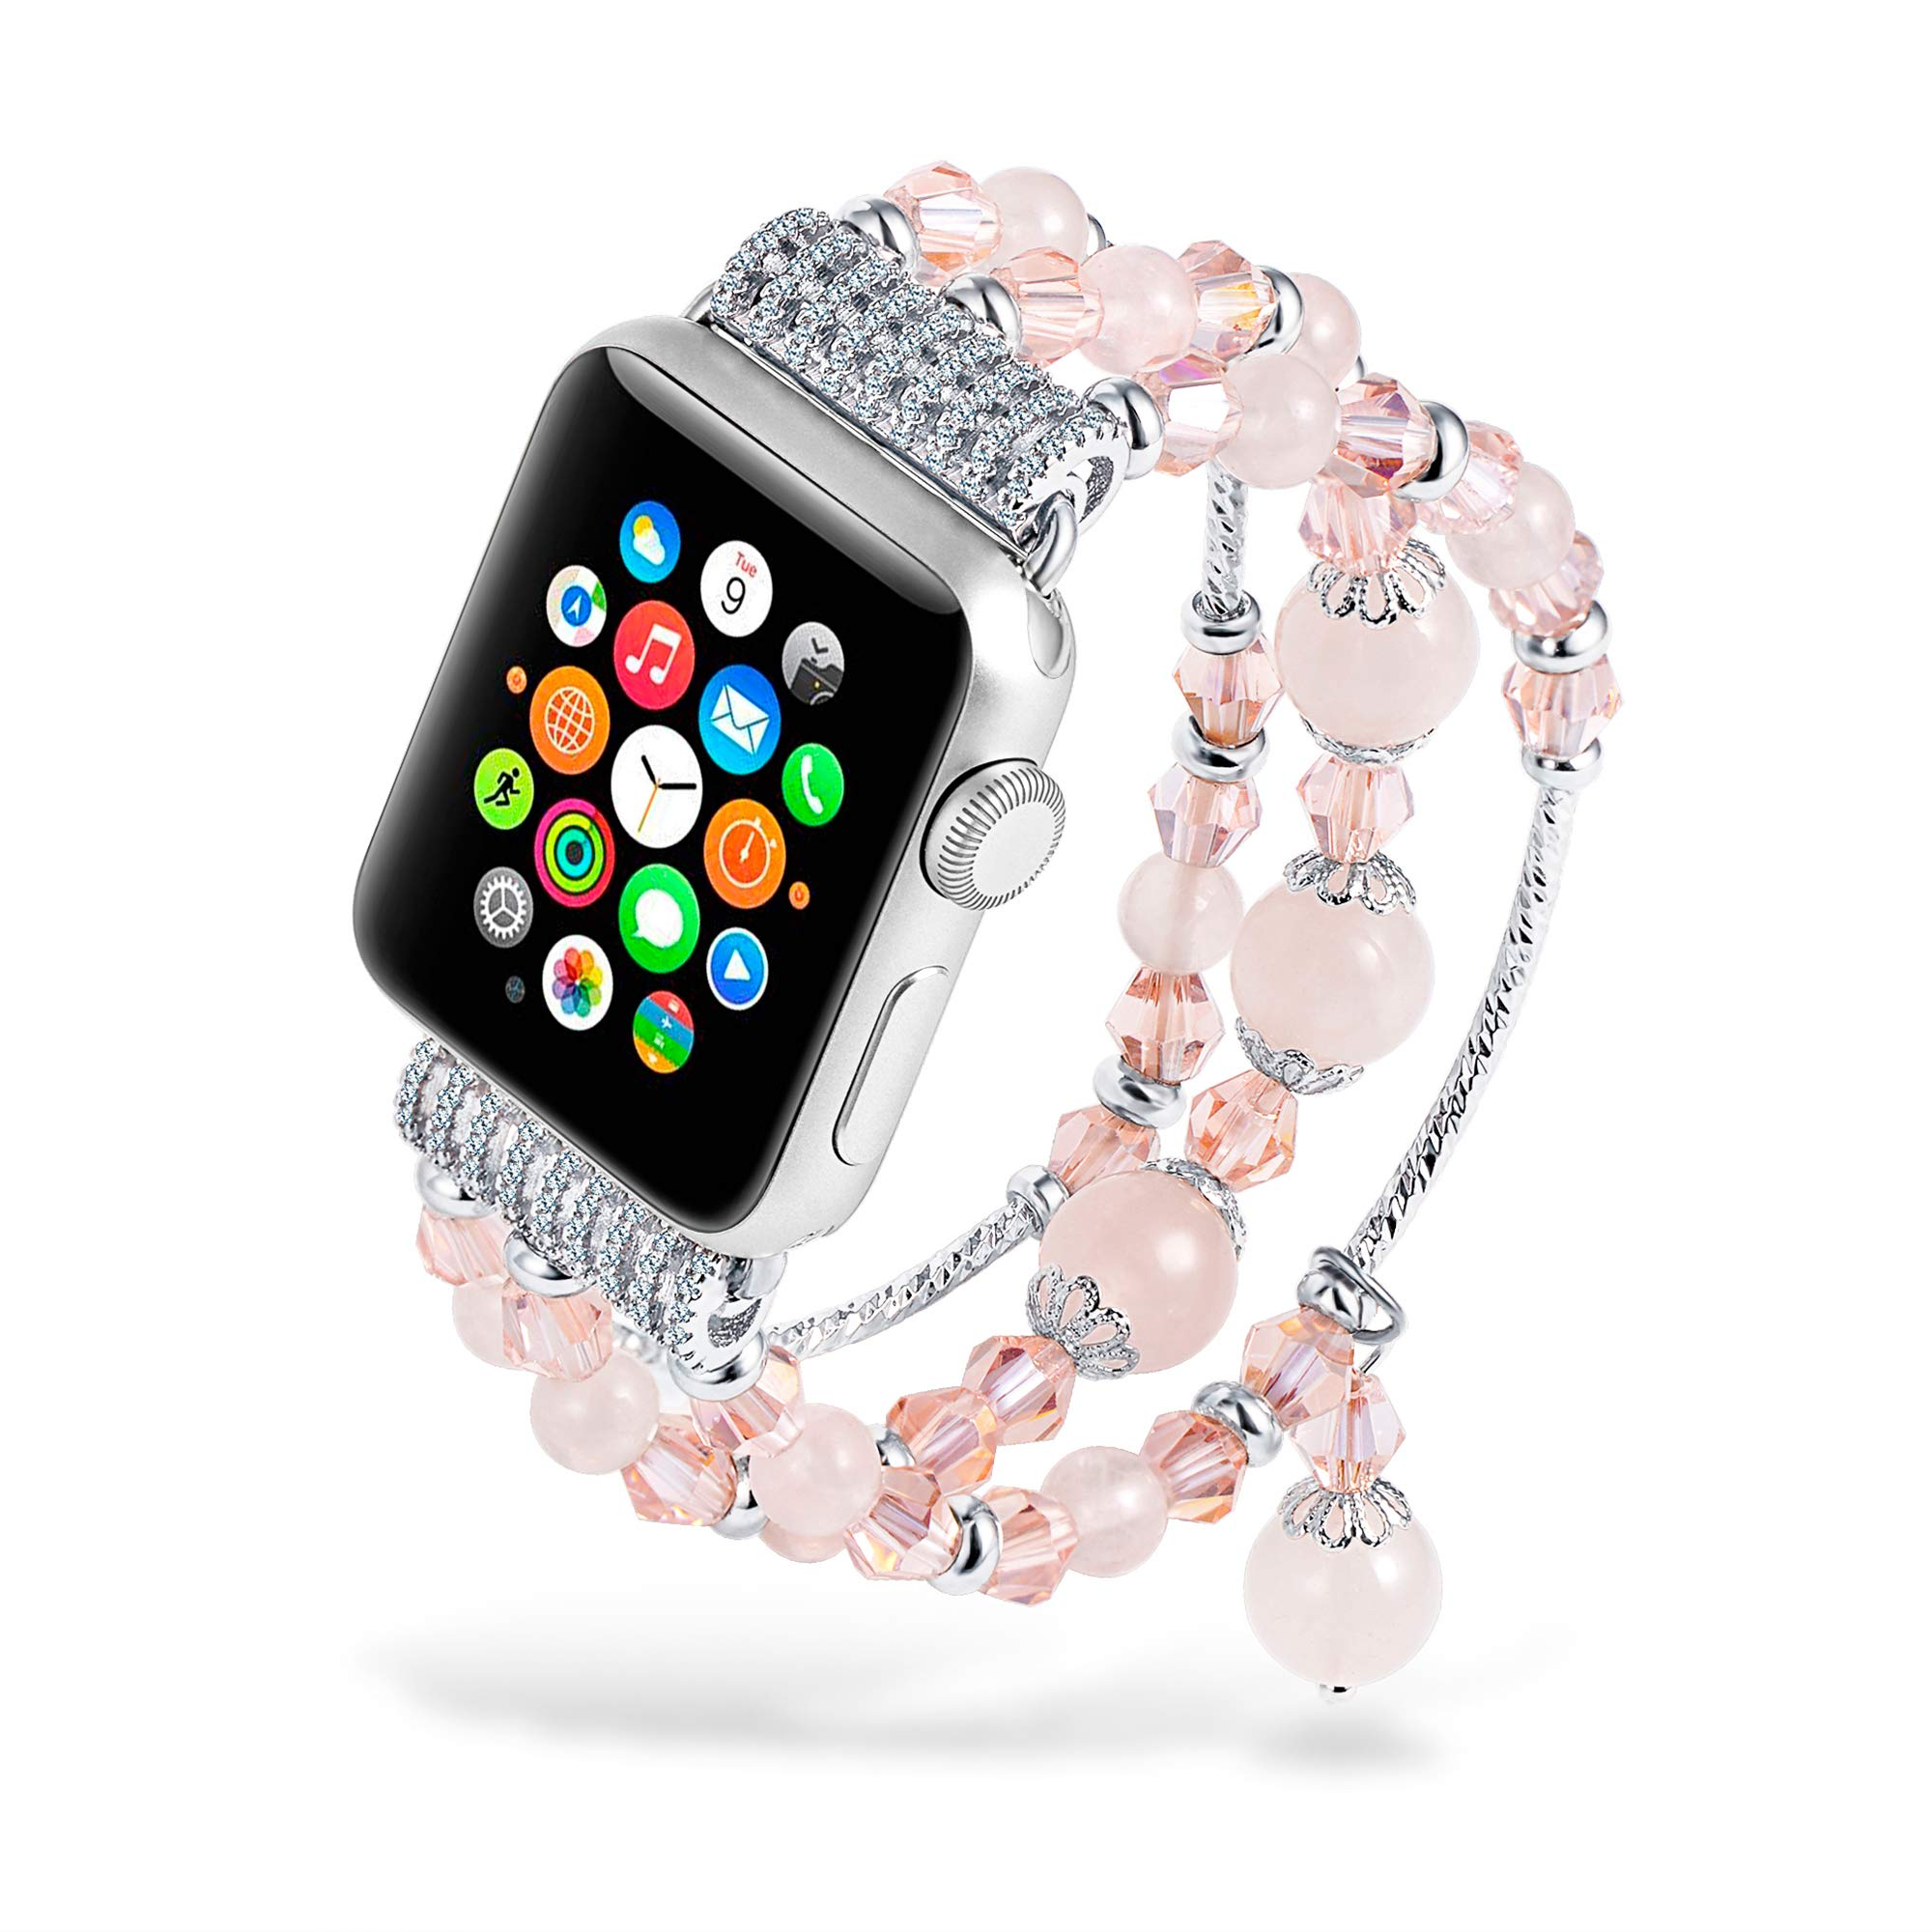 Fashion Beaded Apple Watch Bands Pink Crystal Handmade Bracelet Strap Rose Quartz iWatch Bands for Apple Watch Series 3/2/1 38mm Luxury Gemstone Charm Bangle for Women Ladies by sedmart (Image #2)